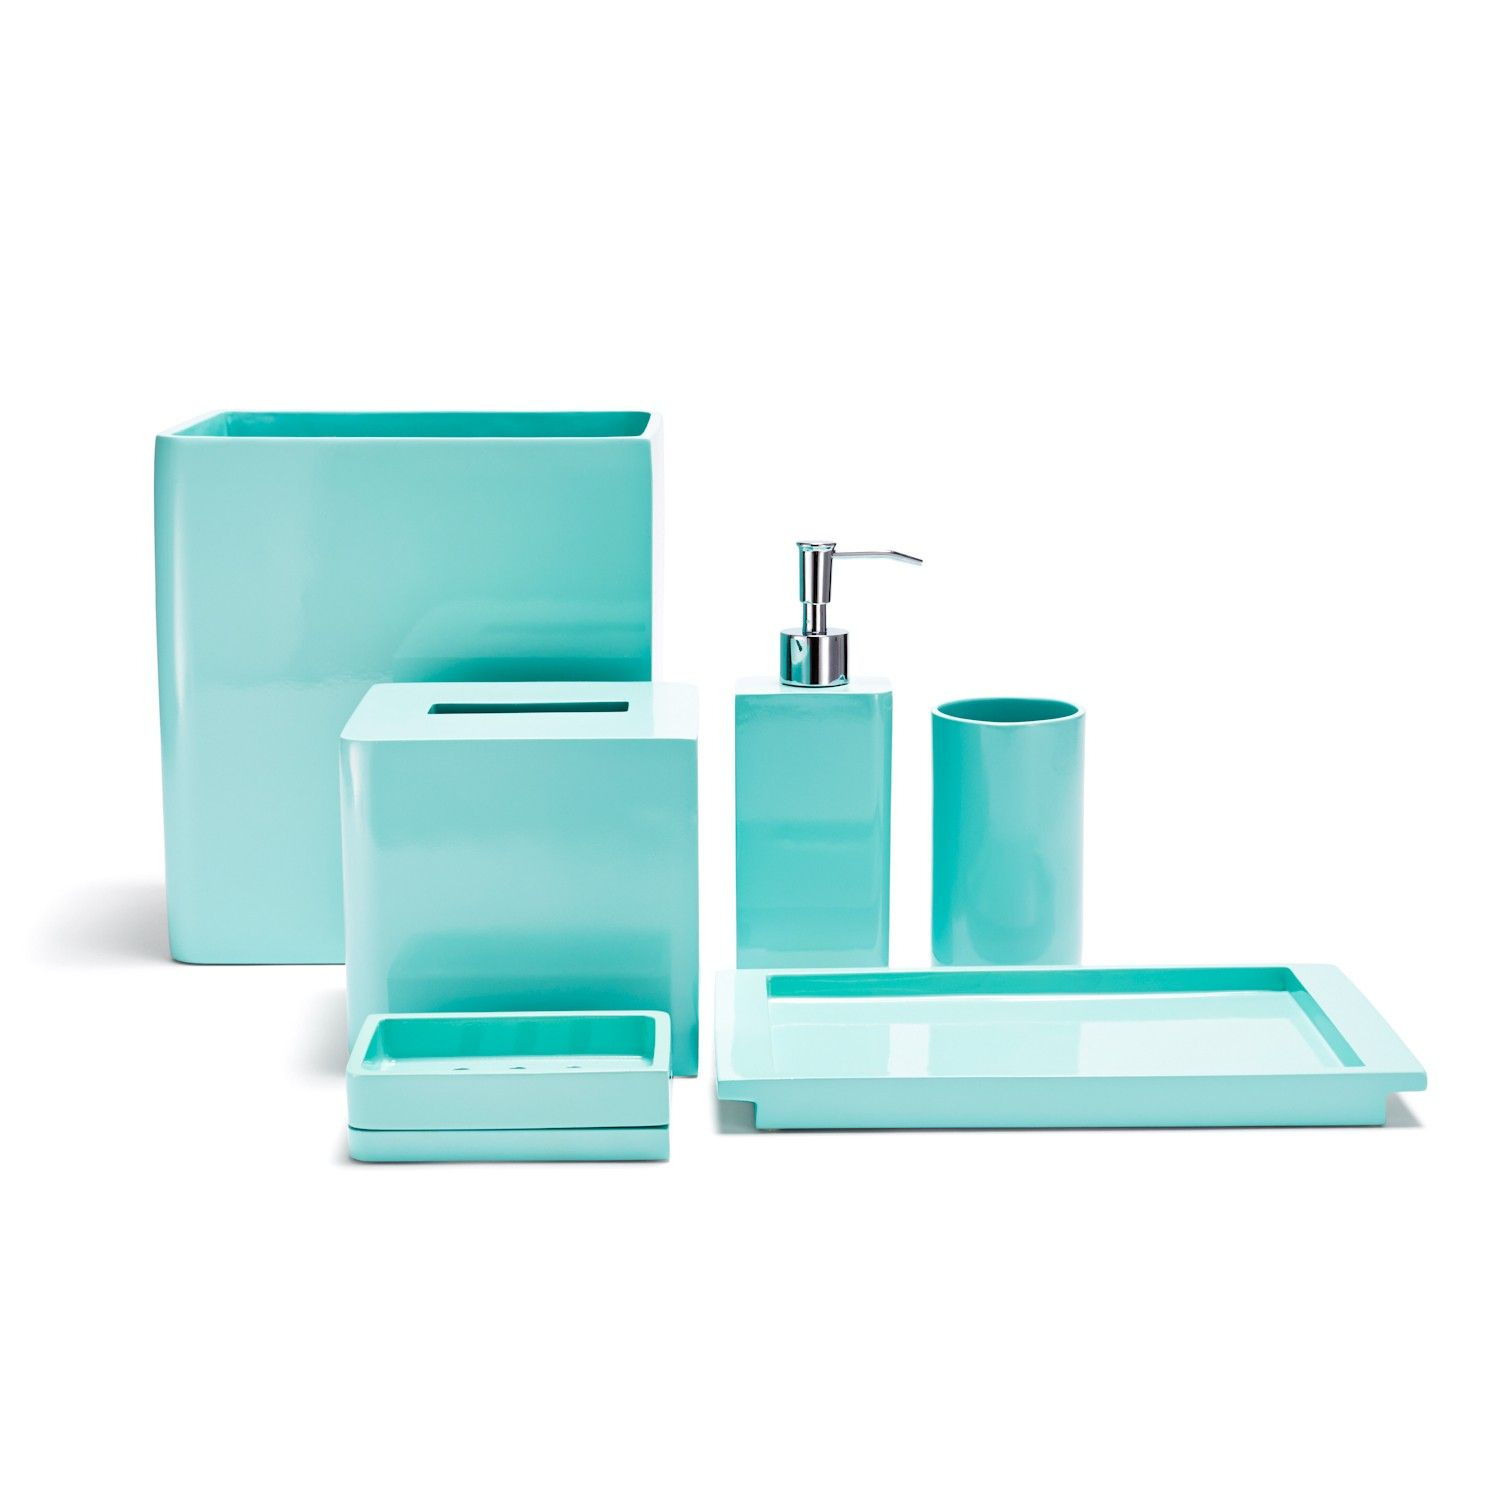 Bathroom accessories in blue ideas pinterest for Turquoise blue bathroom accessories